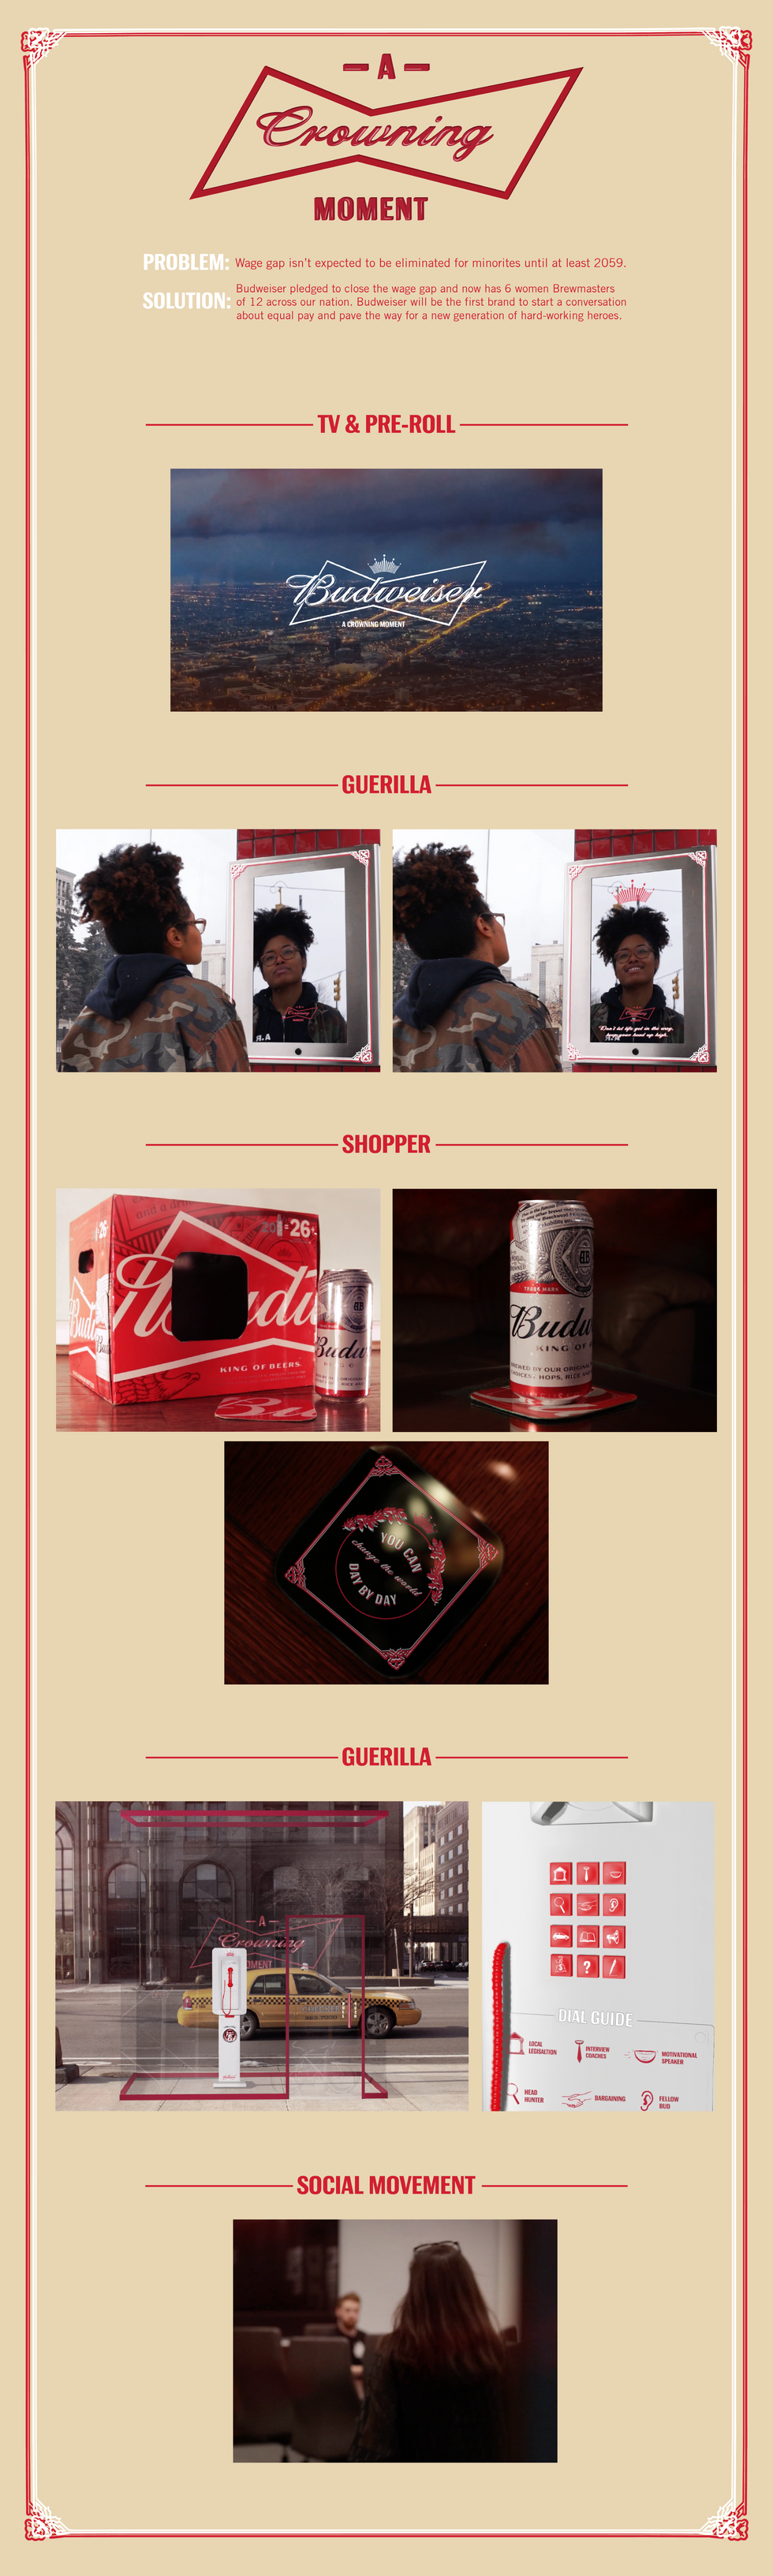 Budweiser-Crowning-Moment.png